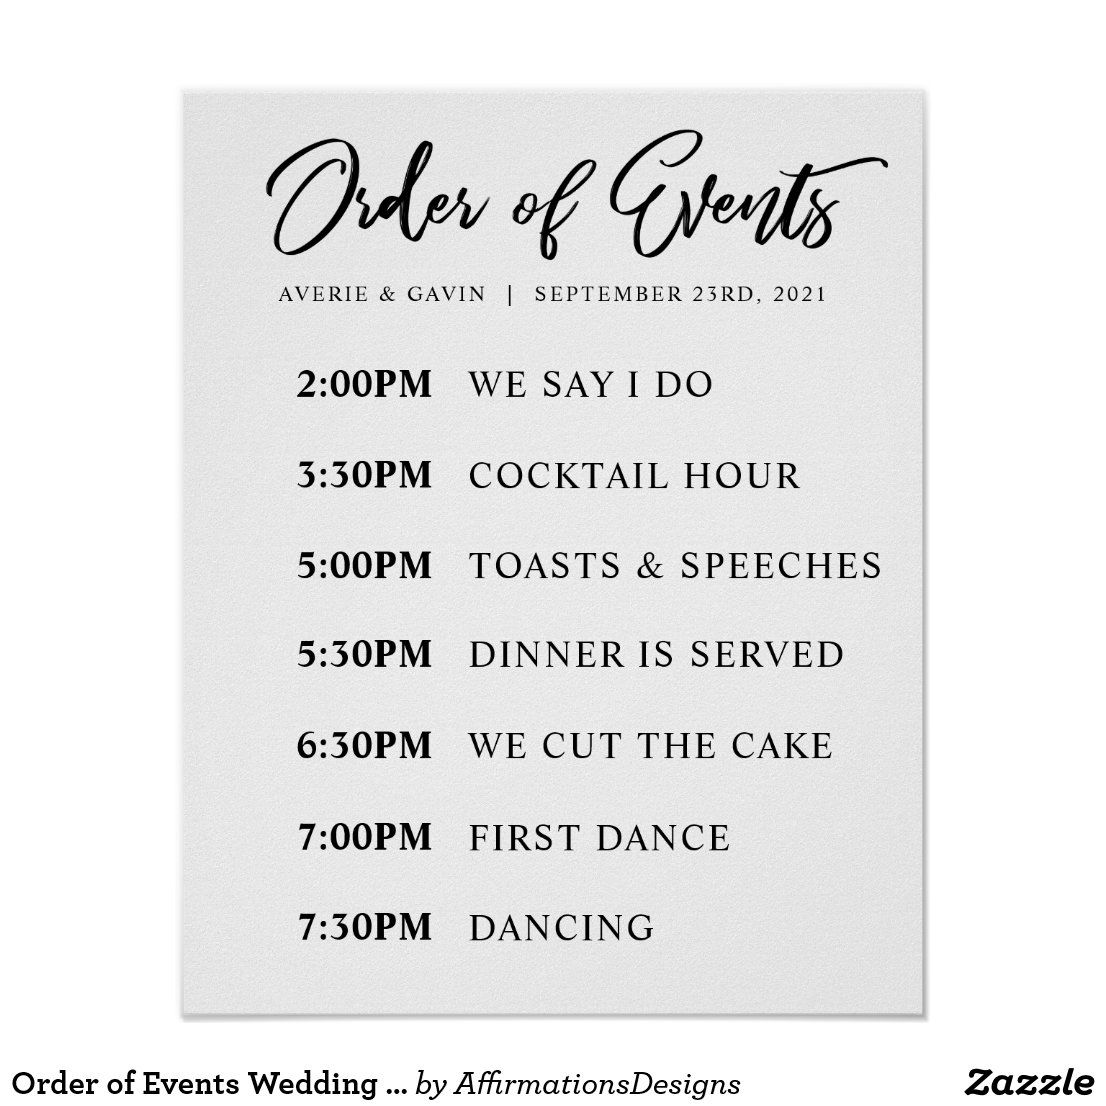 Order Of Events Wedding Day Schedule Poster Zazzle Com Wedding Day Schedule Wedding Reception Timeline Wedding Schedule